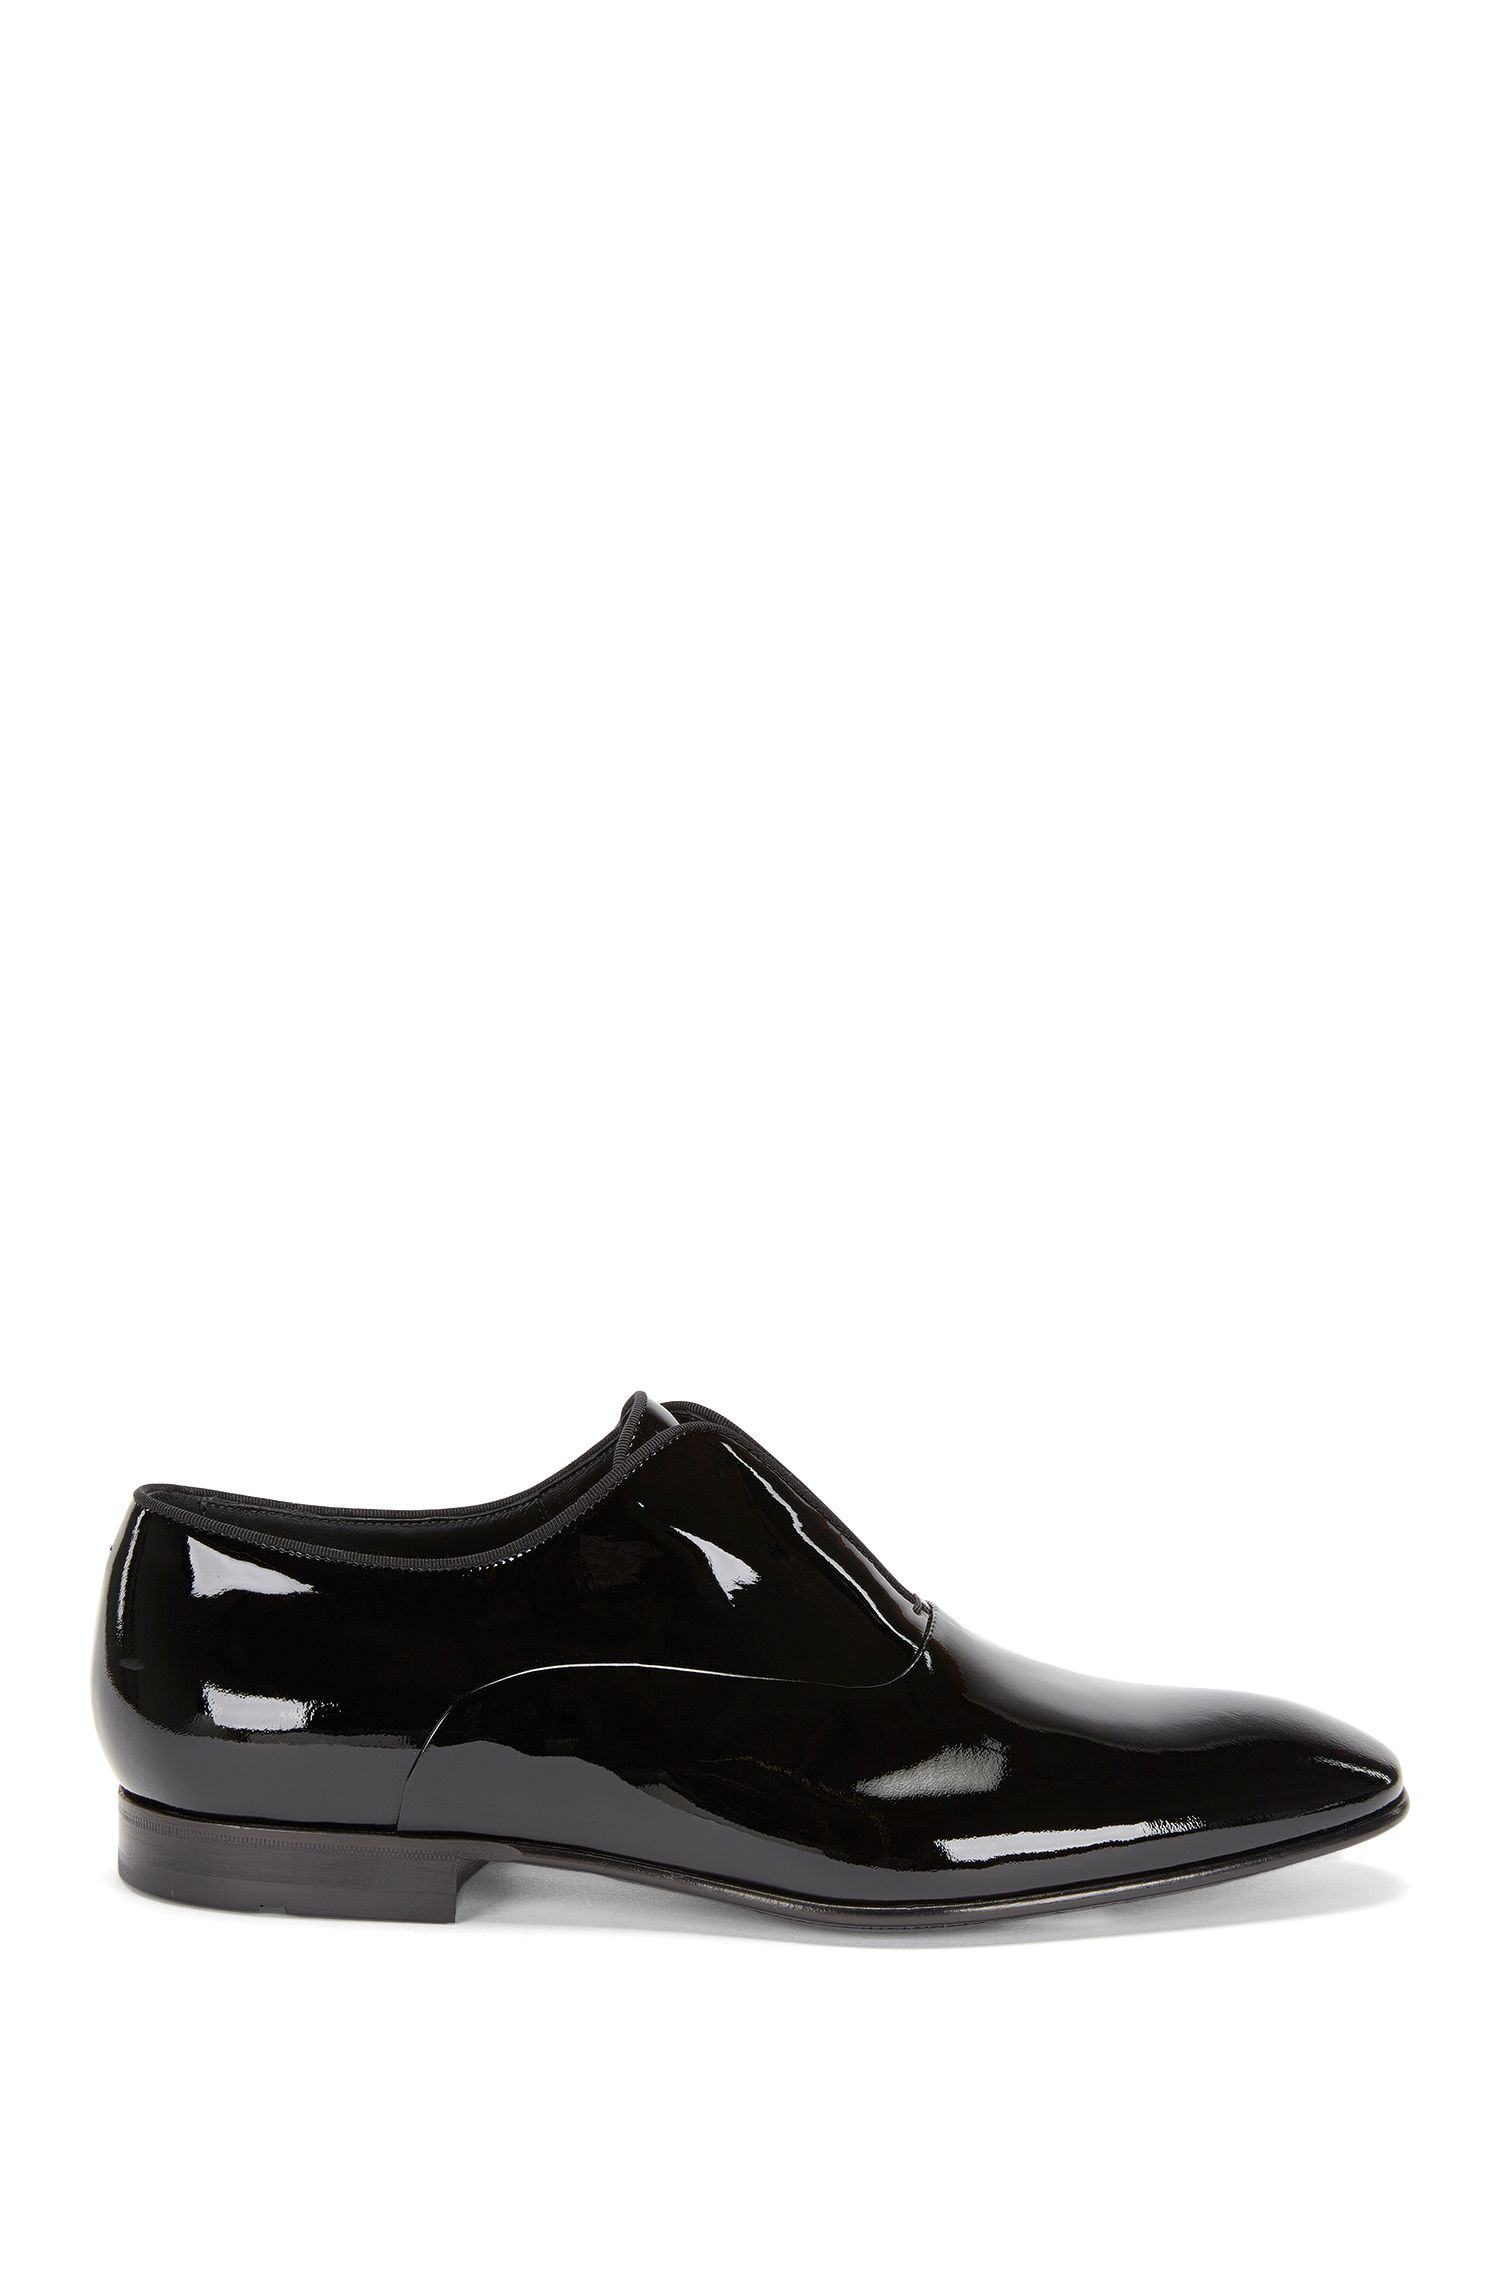 'Evening Slon Pa' | Italian Calfskin Patent Loafers